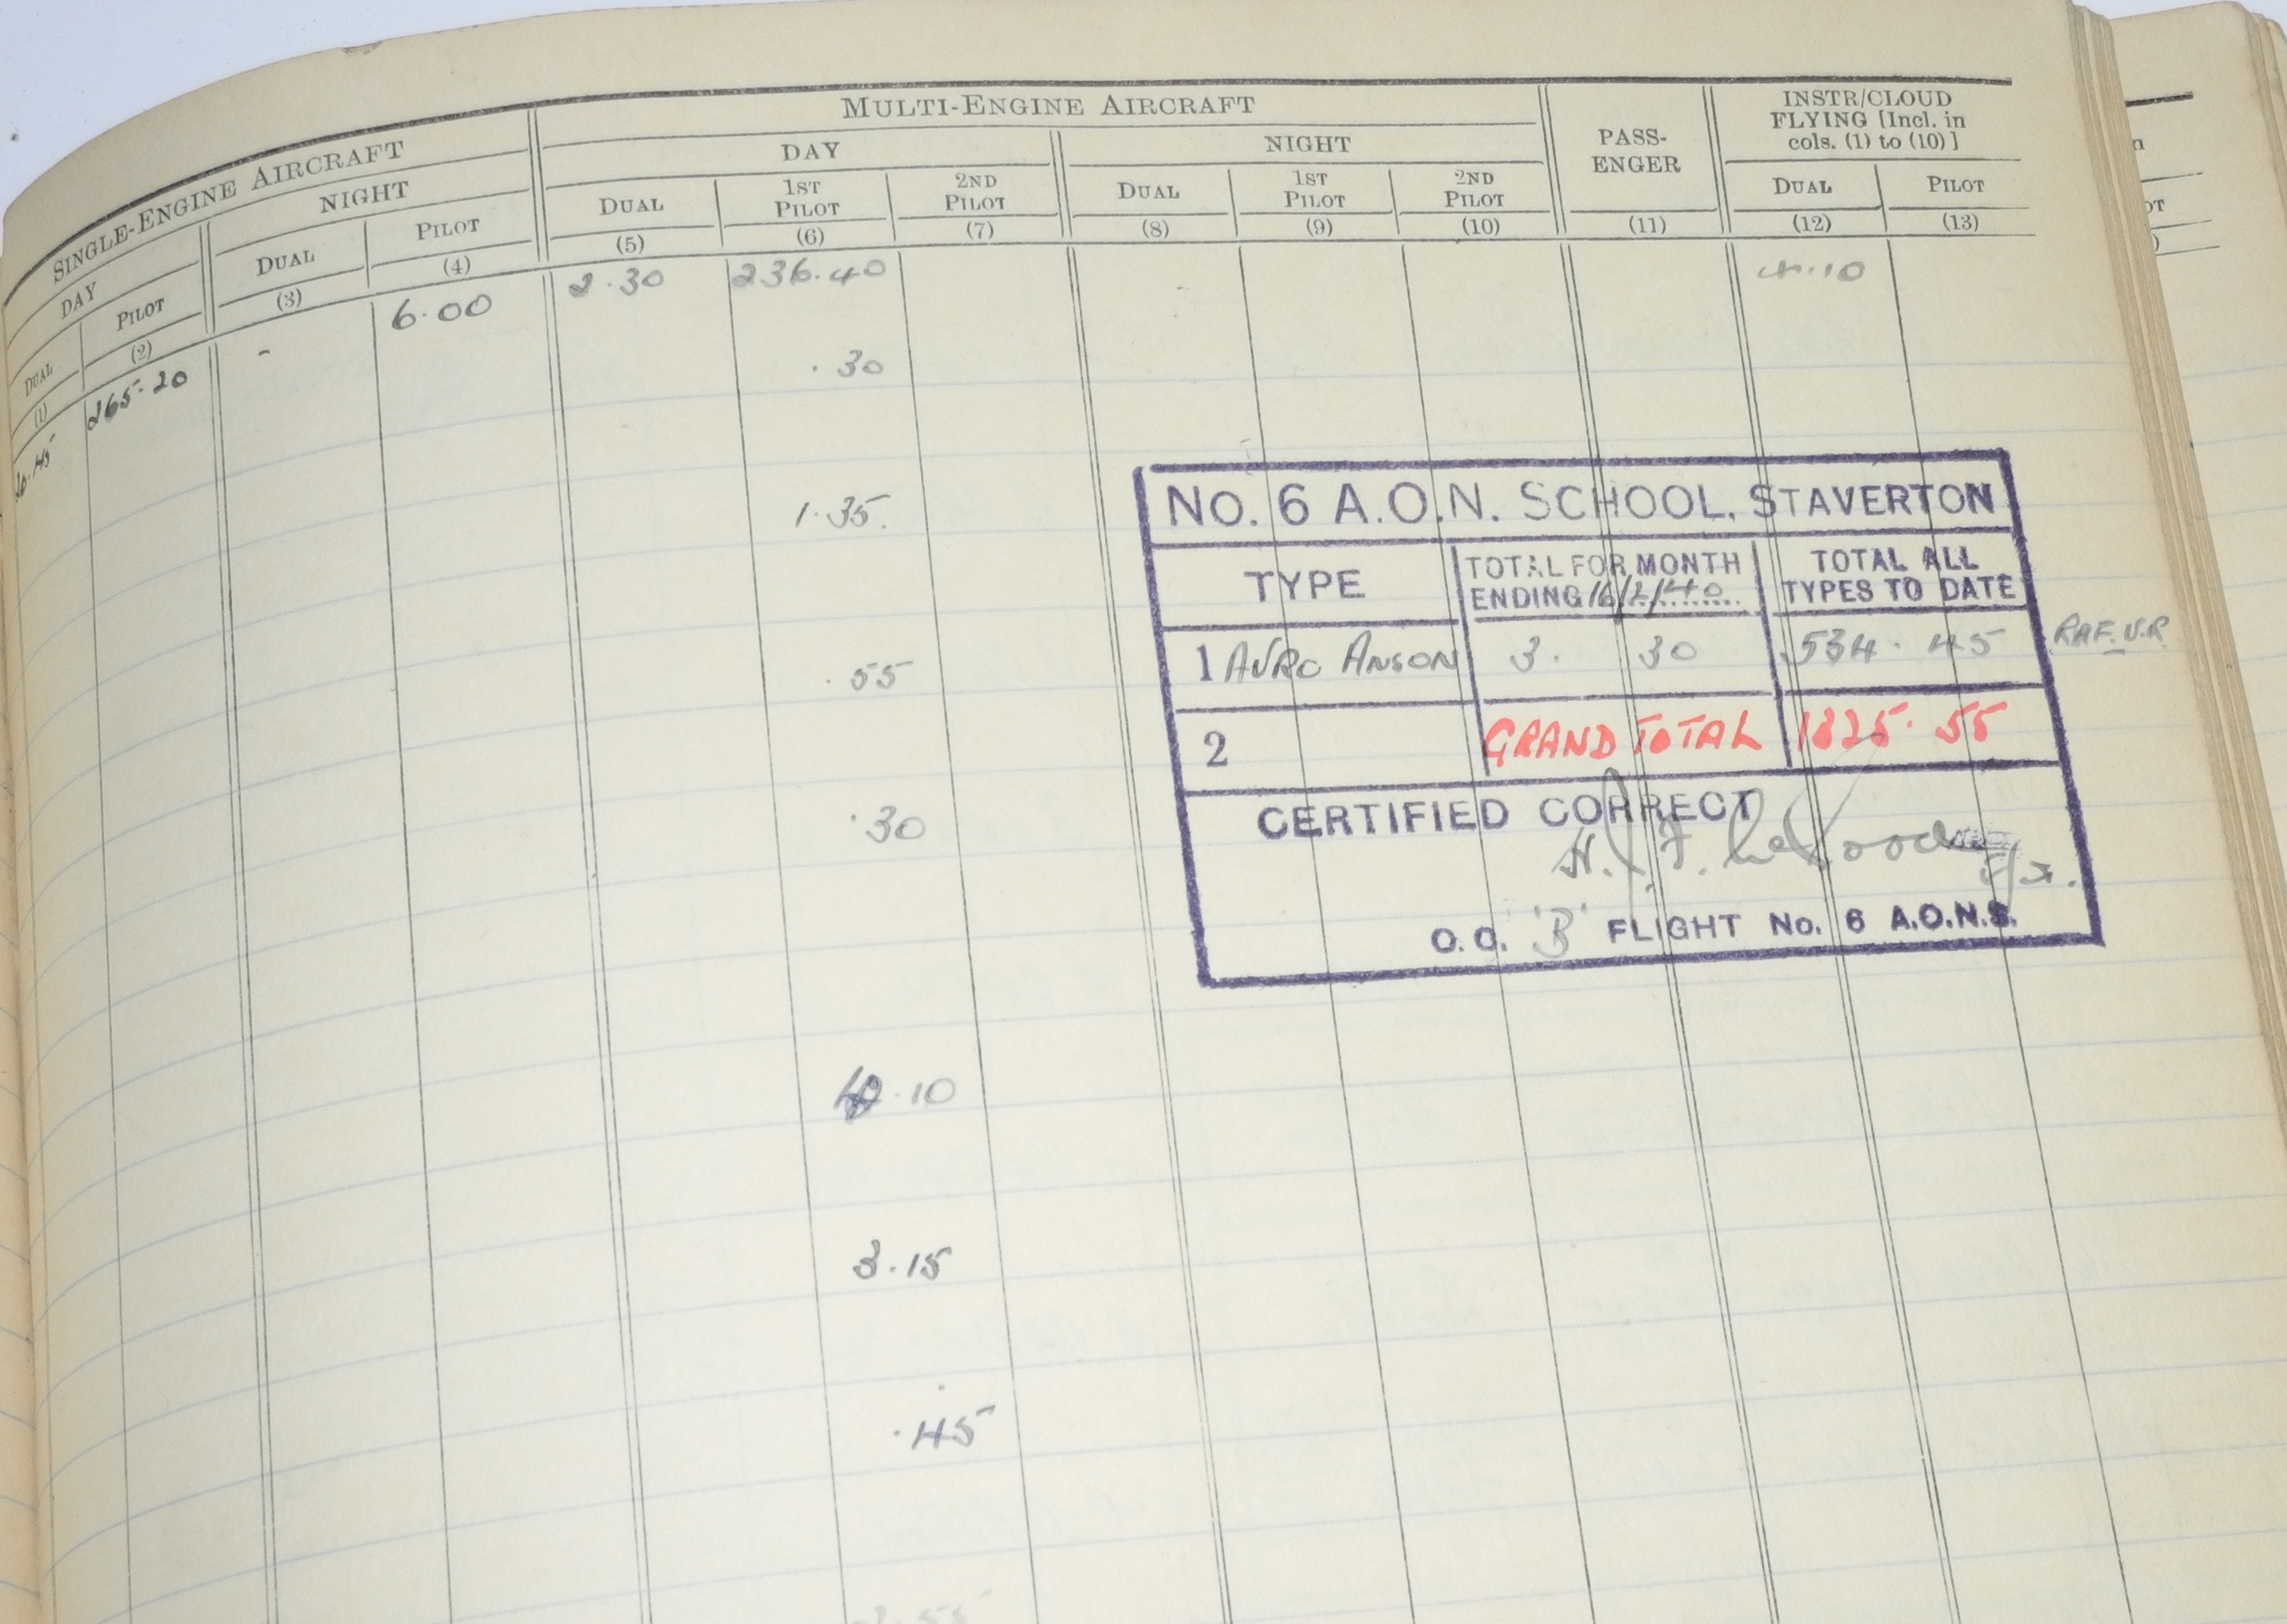 RAF Fighter Pilot Log Book battle of Britain 229 Squadron24